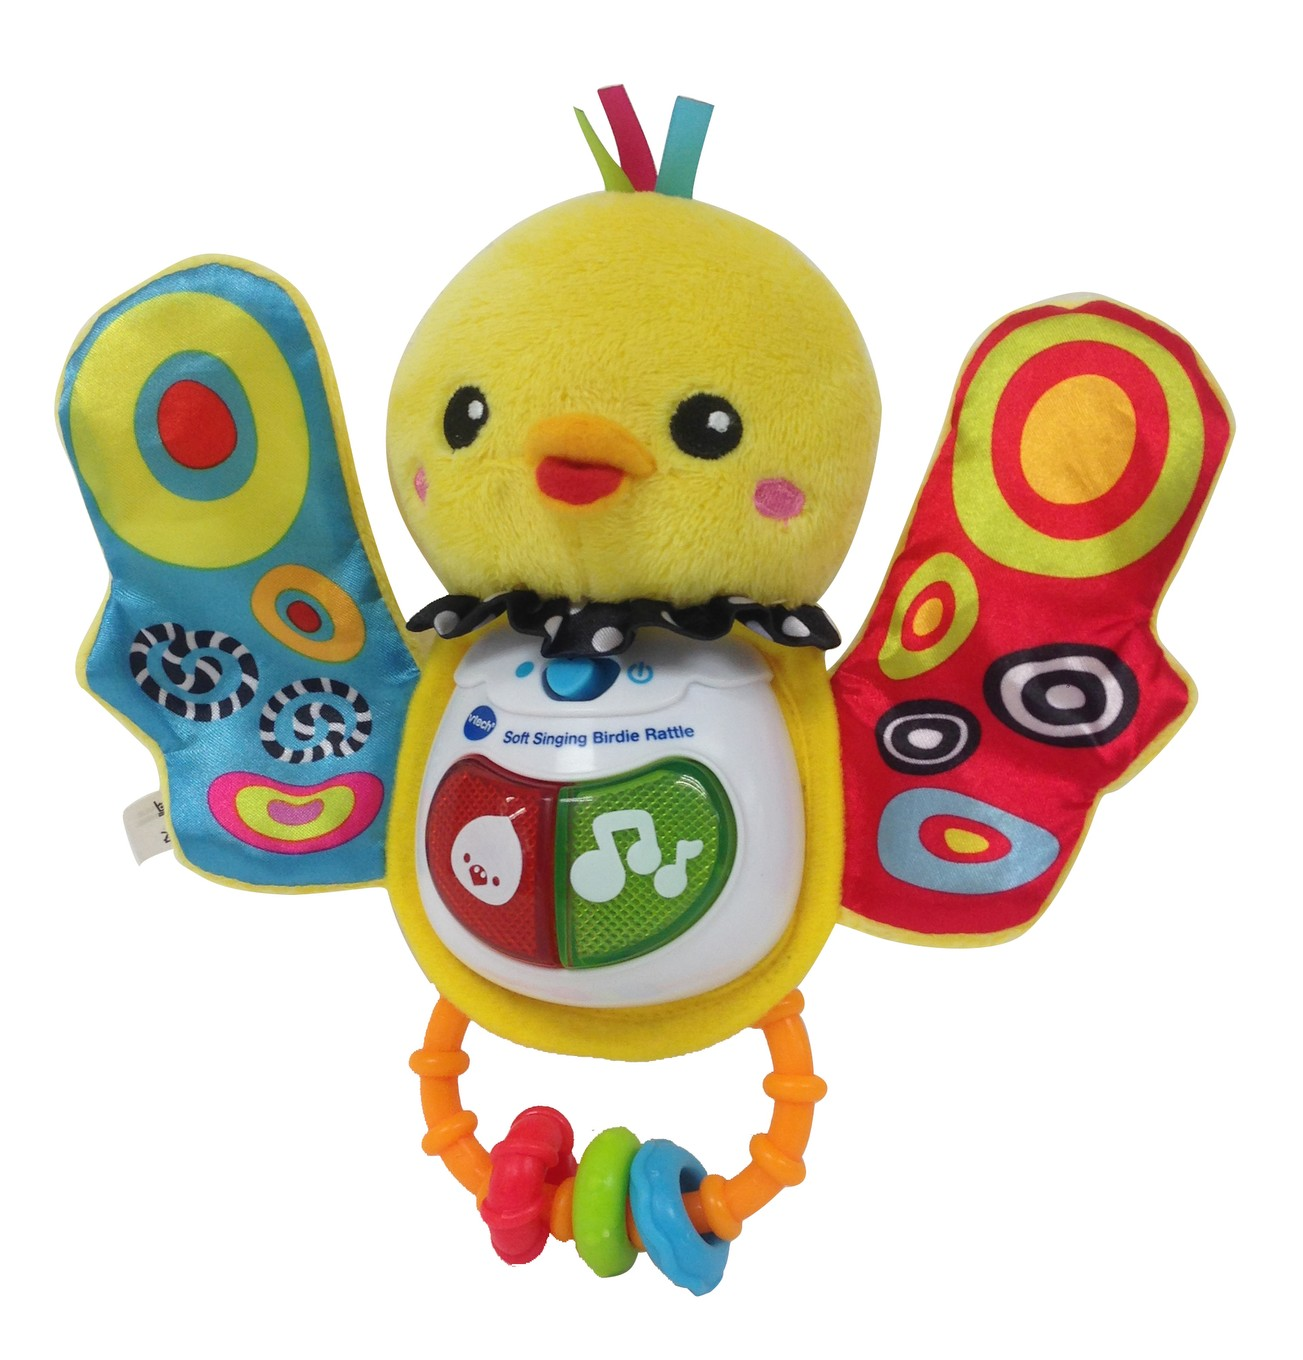 An image of Vtech Soft Singing Birdie Rattle